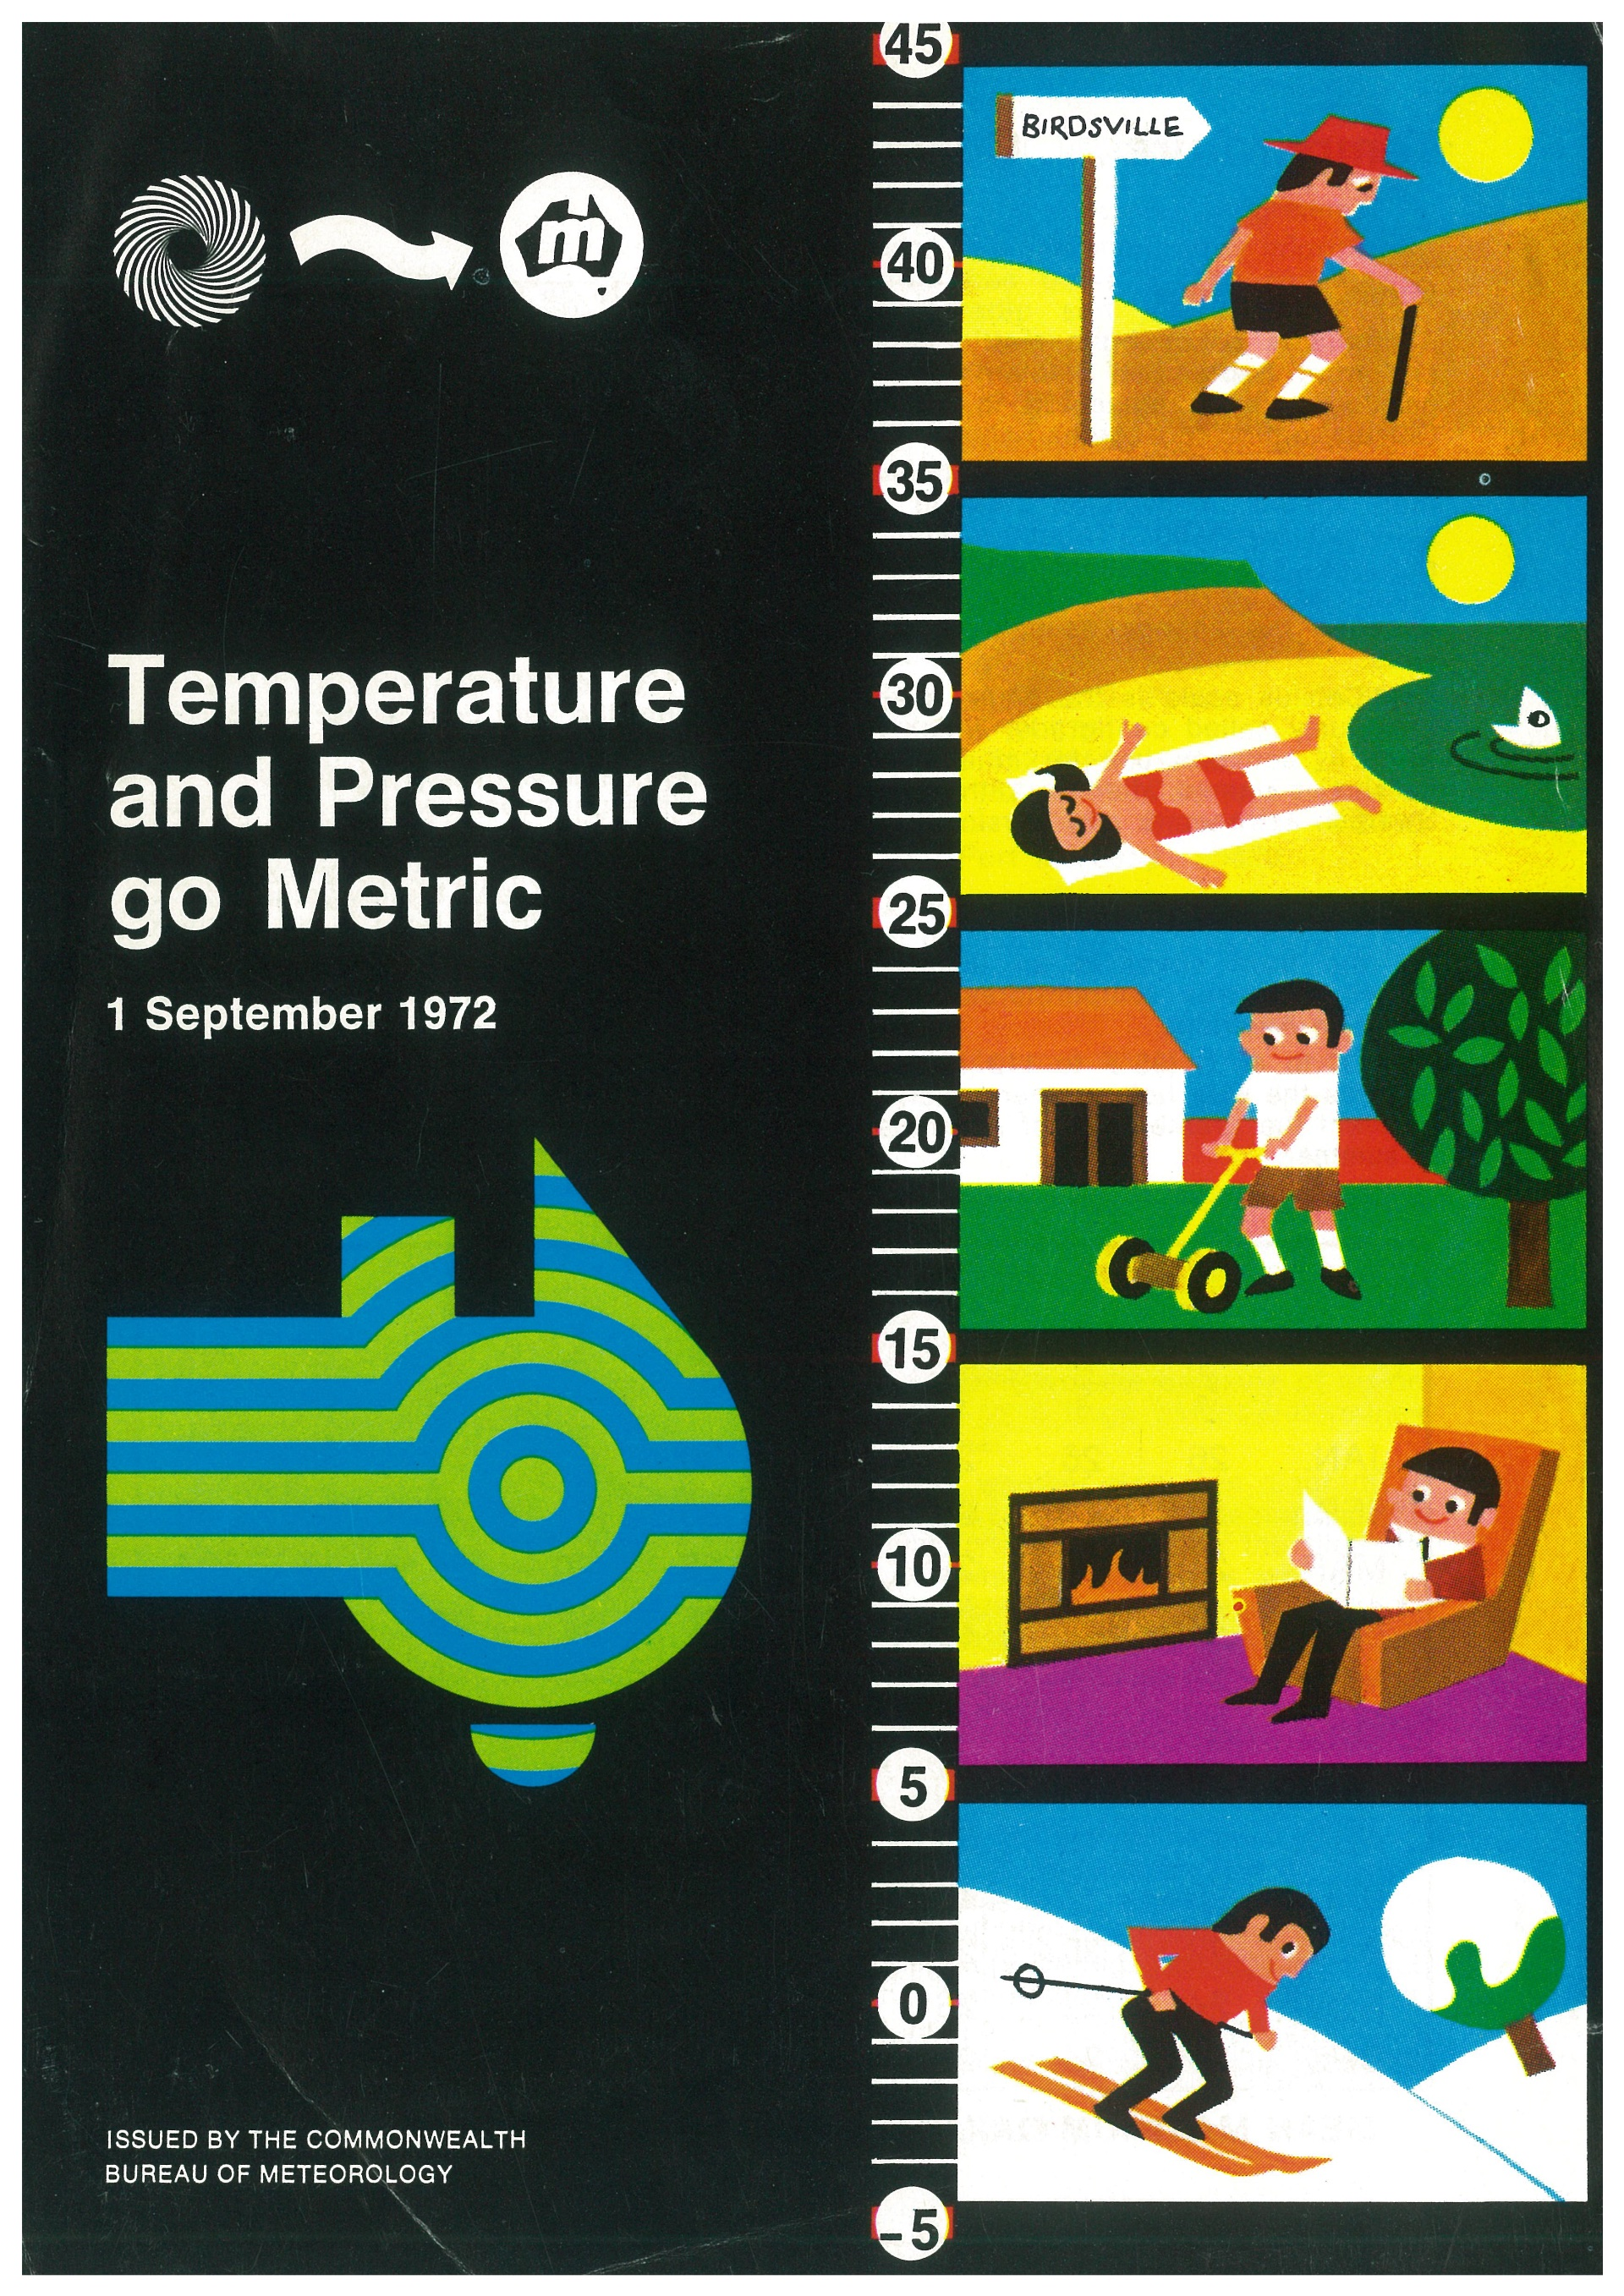 Bureau of Meteorology, 'Temperature and Pressure go Metric', 1 September 1972. Front cover of a pamphlet issued to raise public awareness of the upcoming metric conversion. Reproduced by permission of Bureau of Meteorology, © 2019 Commonwealth of Australia